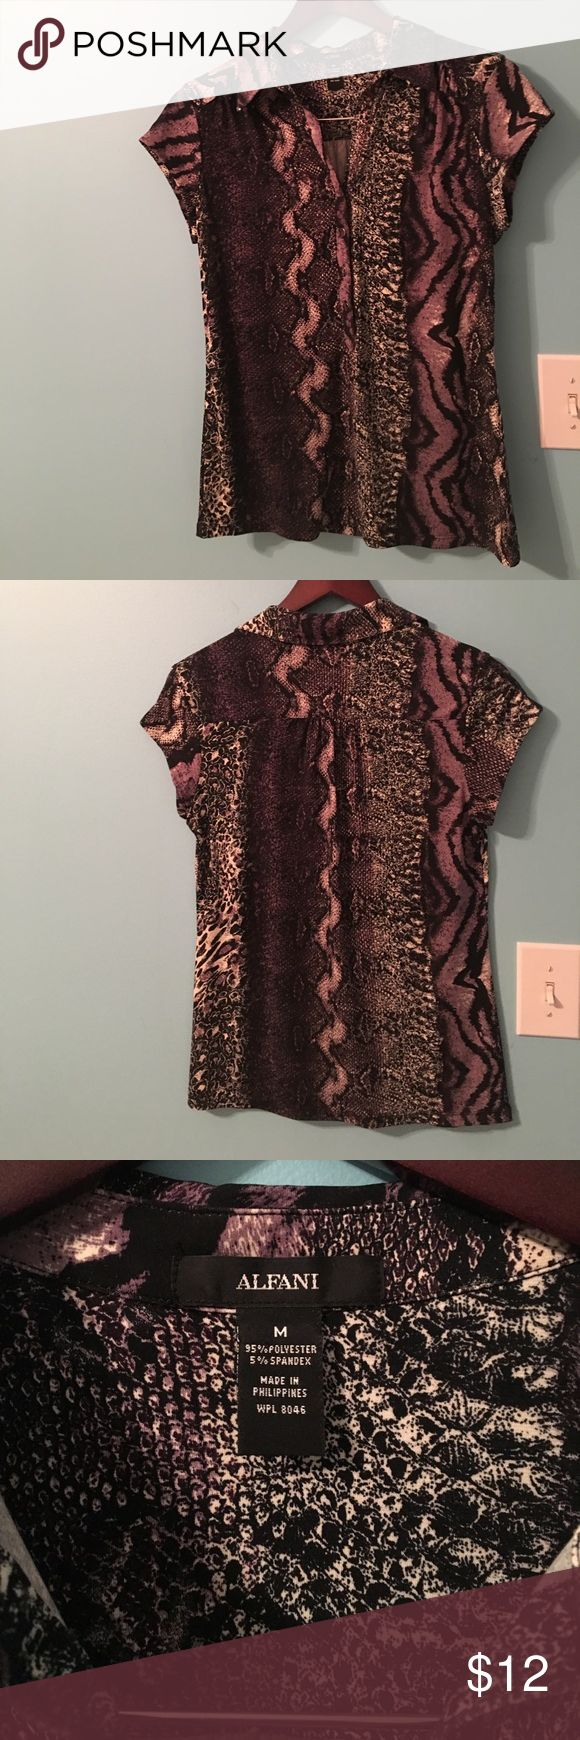 Short sleeve 3/4 button front animal print top Pretty black, purple and white animal print cap sleeve top. Drapes very nicely on the body. Only worn a couple of times. 95% Polyester 5% spandex Alfani Tops Blouses